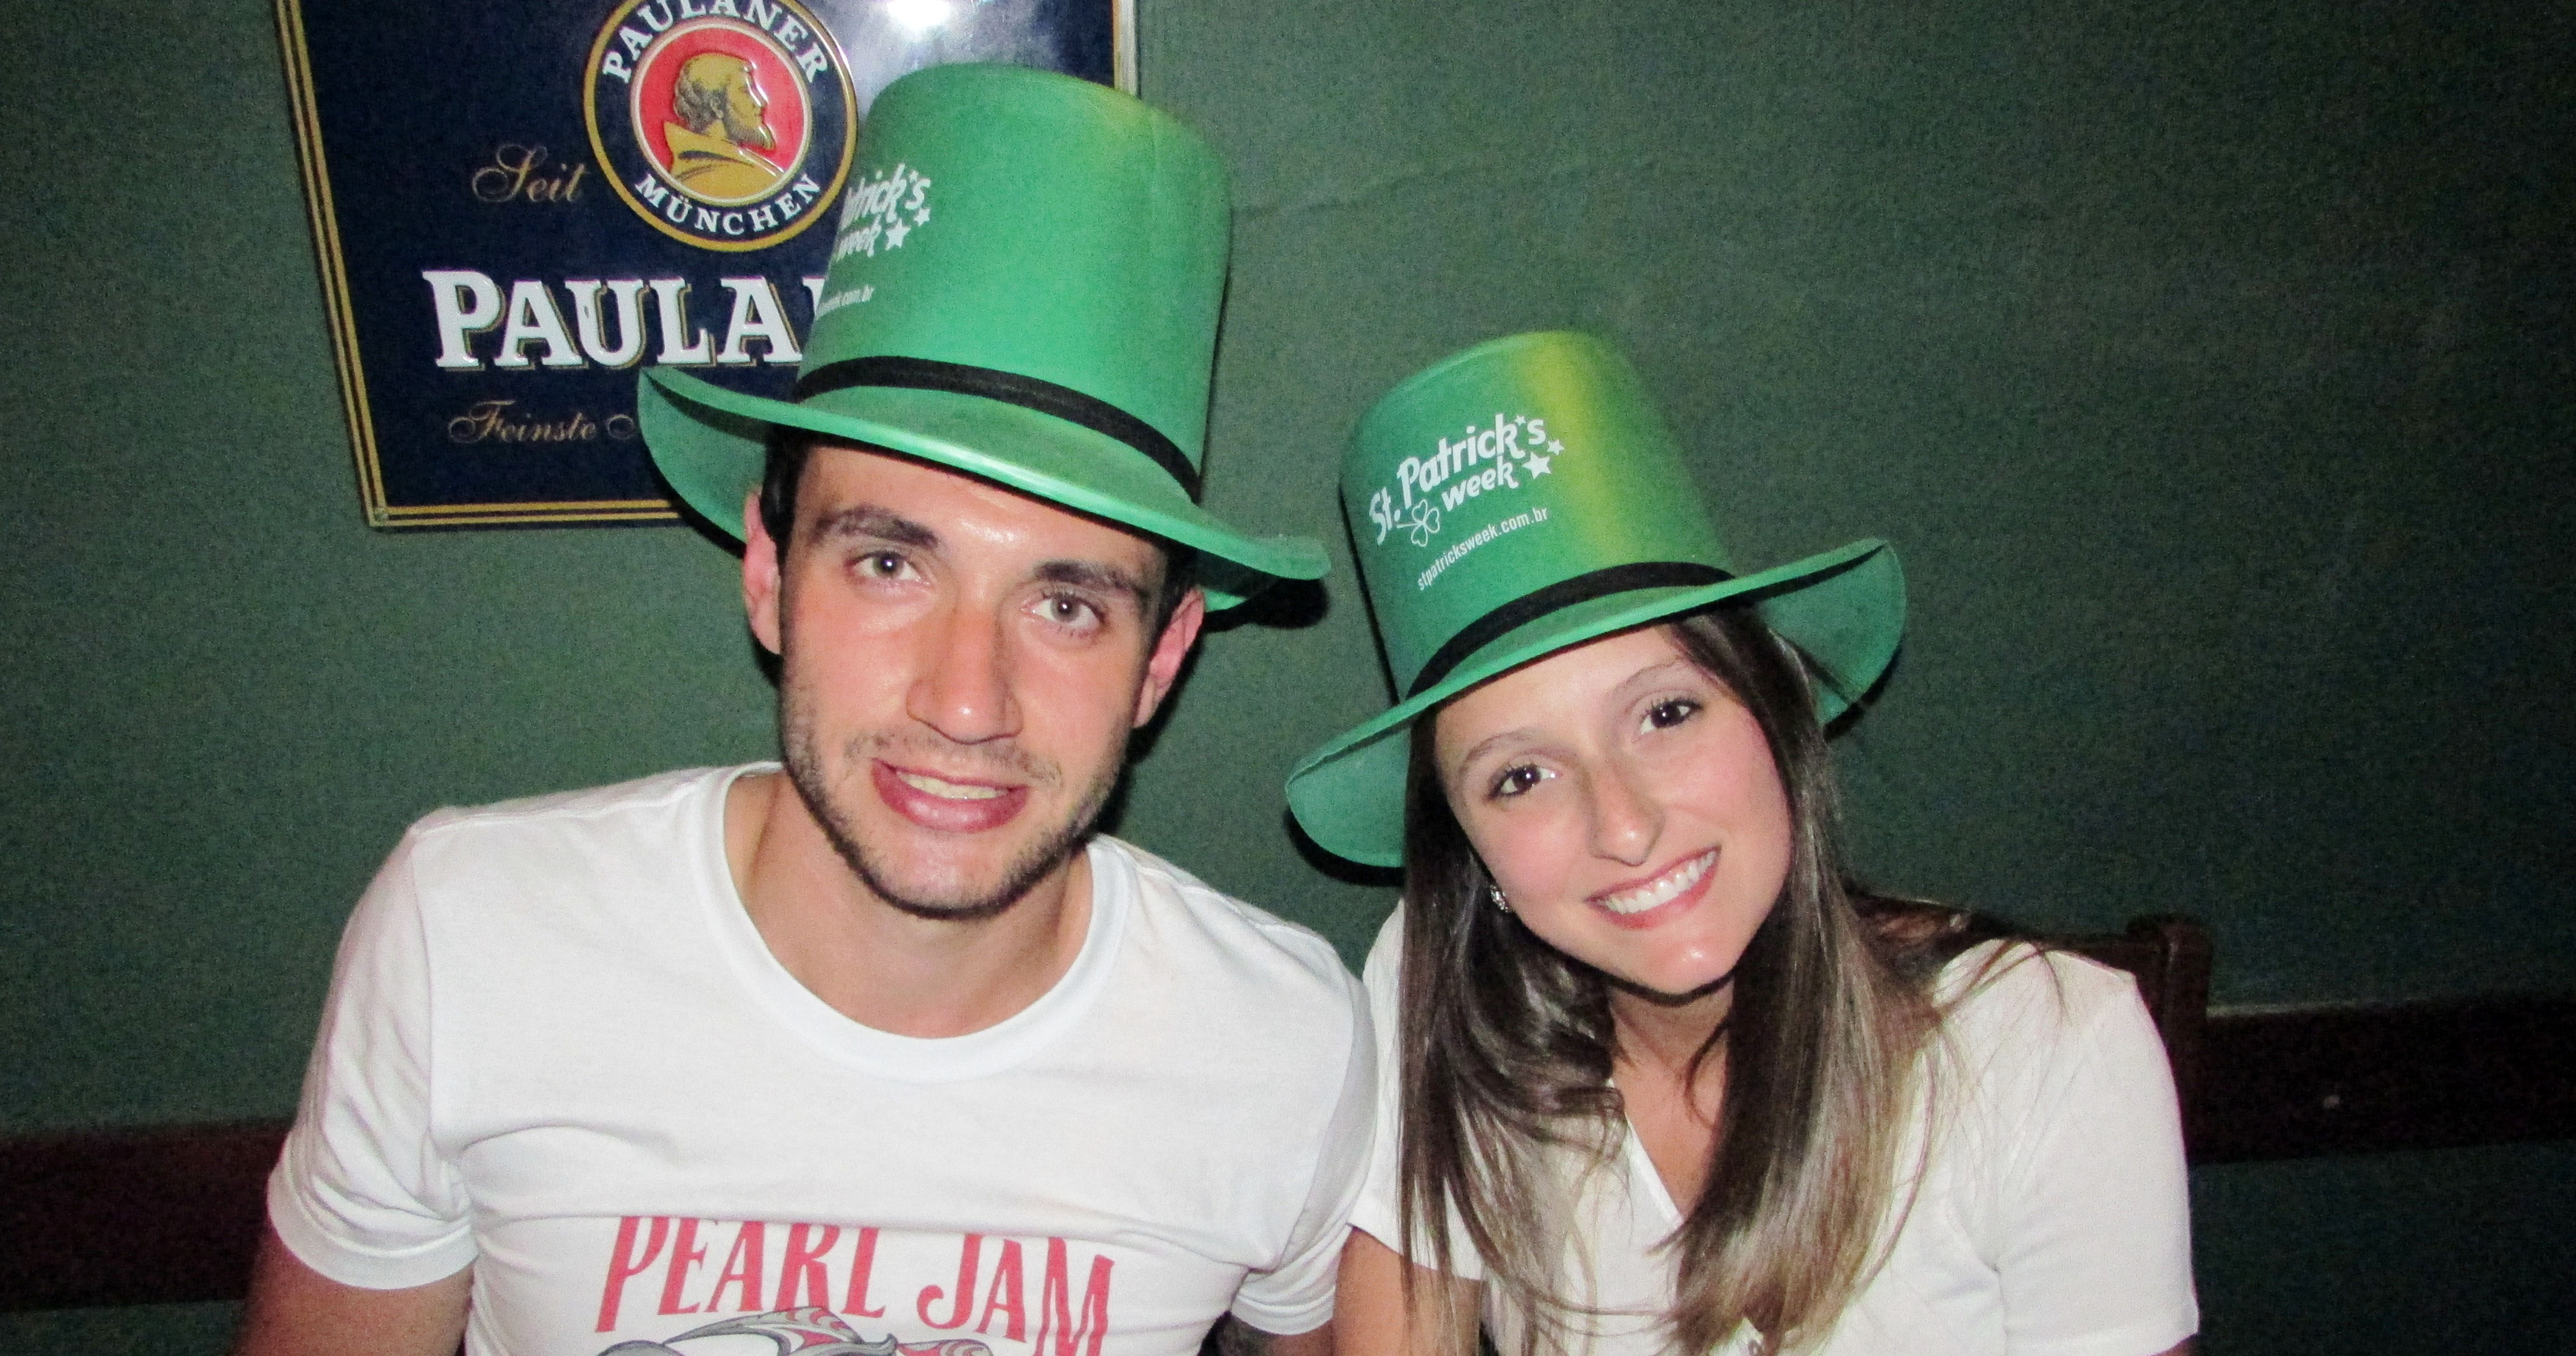 Banda Appleheads e Gaita de Foles animaram o St. Patricks Day do Goodfellas